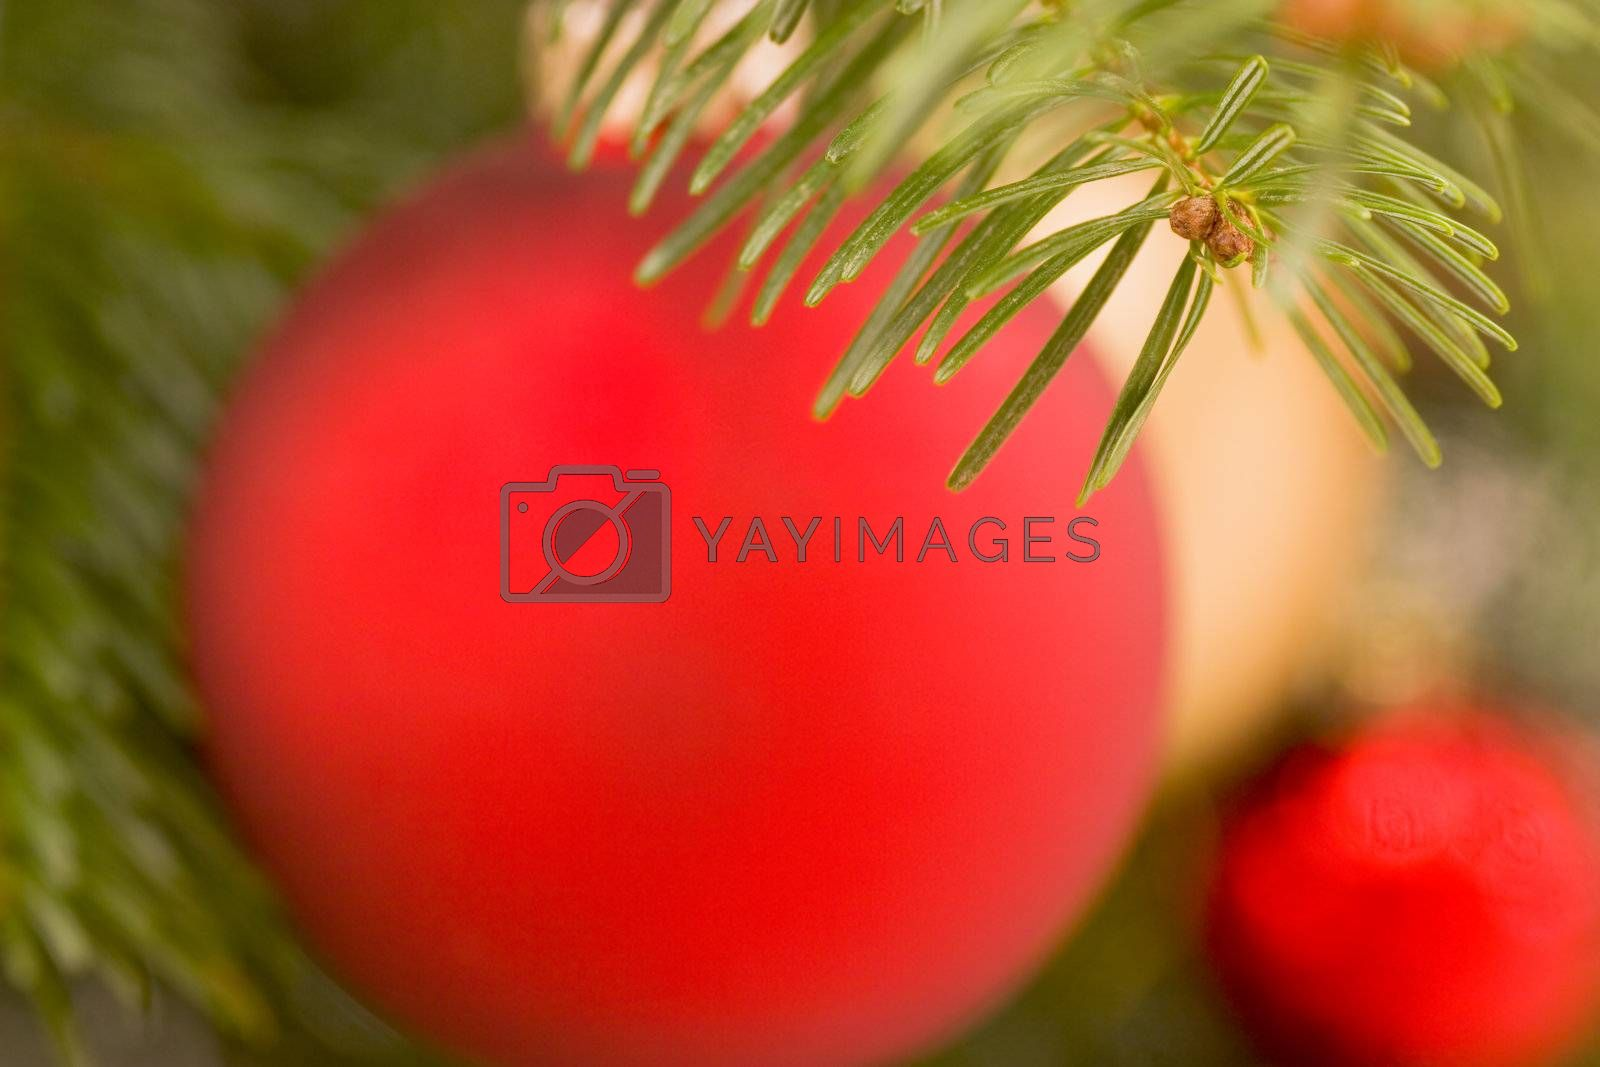 Blurred christmas tree decorations background. Focus on the fir needles in the foreground